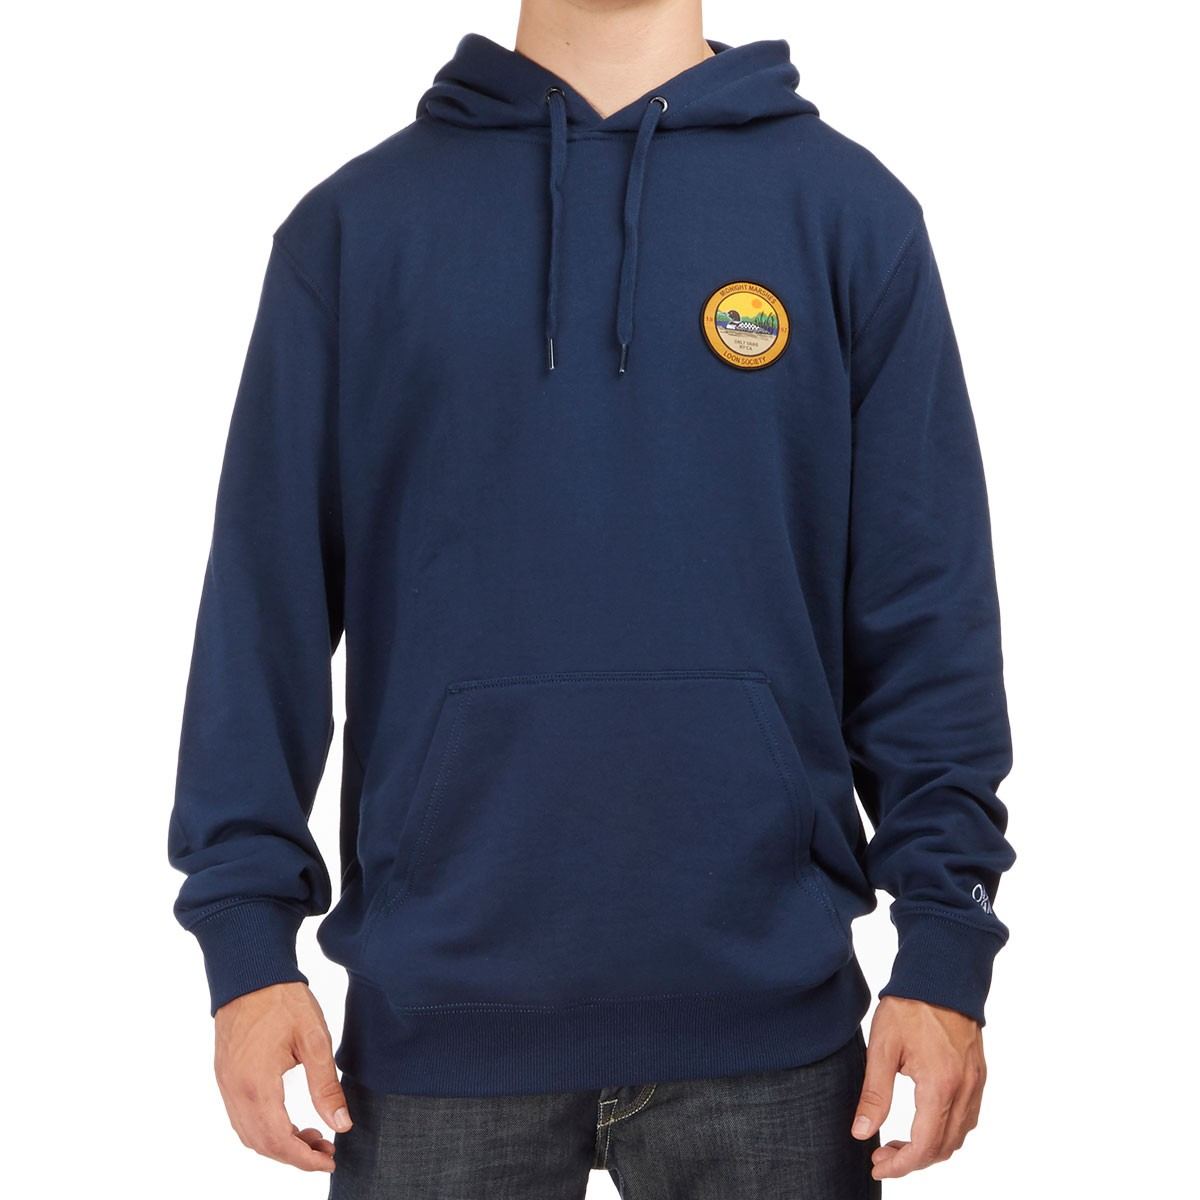 Vans X Only Loon Society Pullover Hoodie - Dress Blues